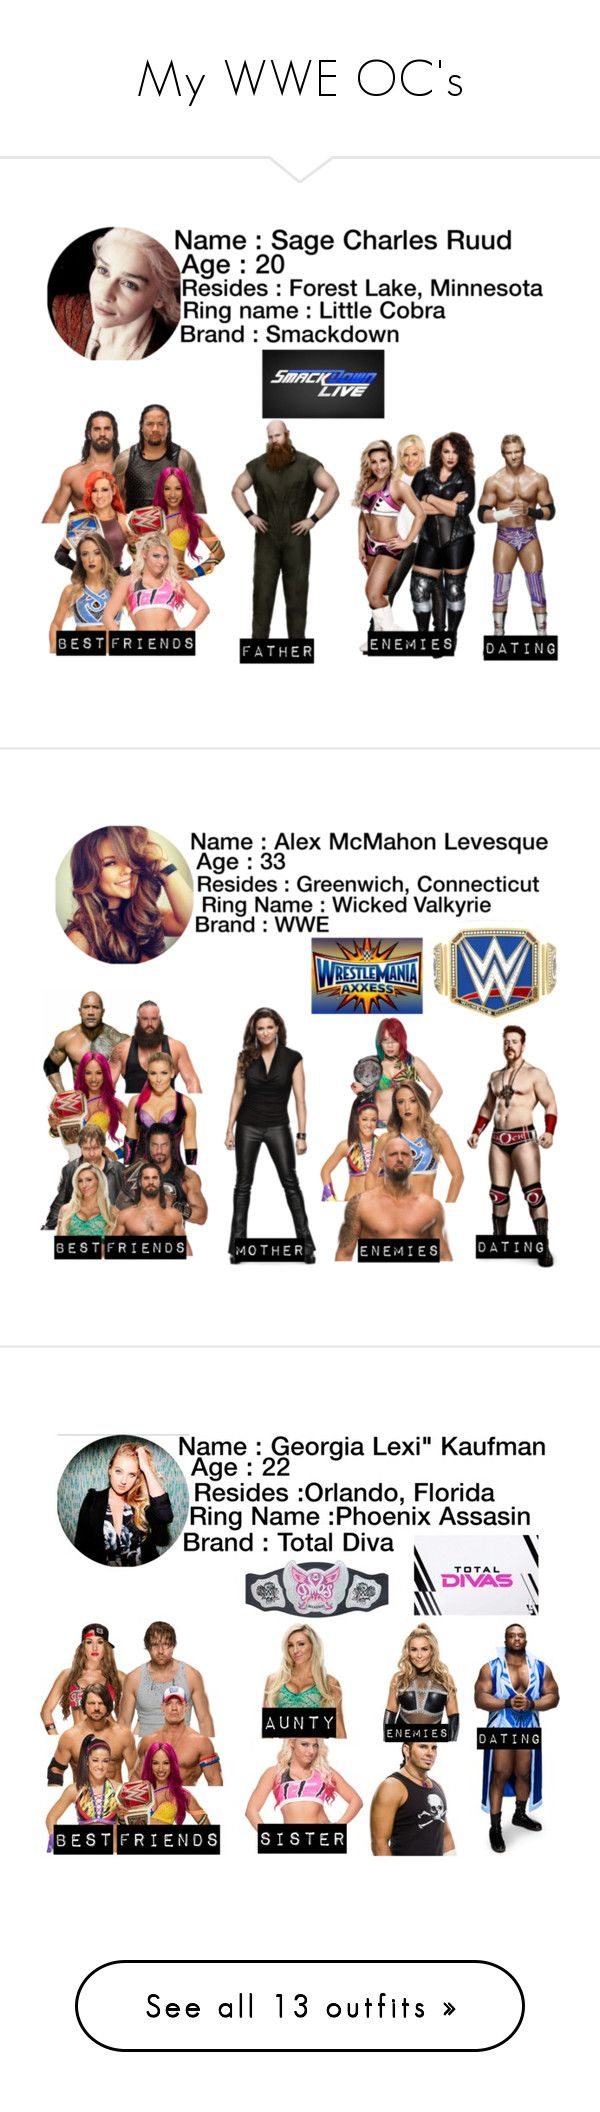 """""""My WWE OC's"""" by moon-and-back-babe123 ❤ liked on Polyvore featuring Ryder, WWE, Braun, Karl Lagerfeld, GET LOST, CENA, Episode, Champion, Kane and Disney"""